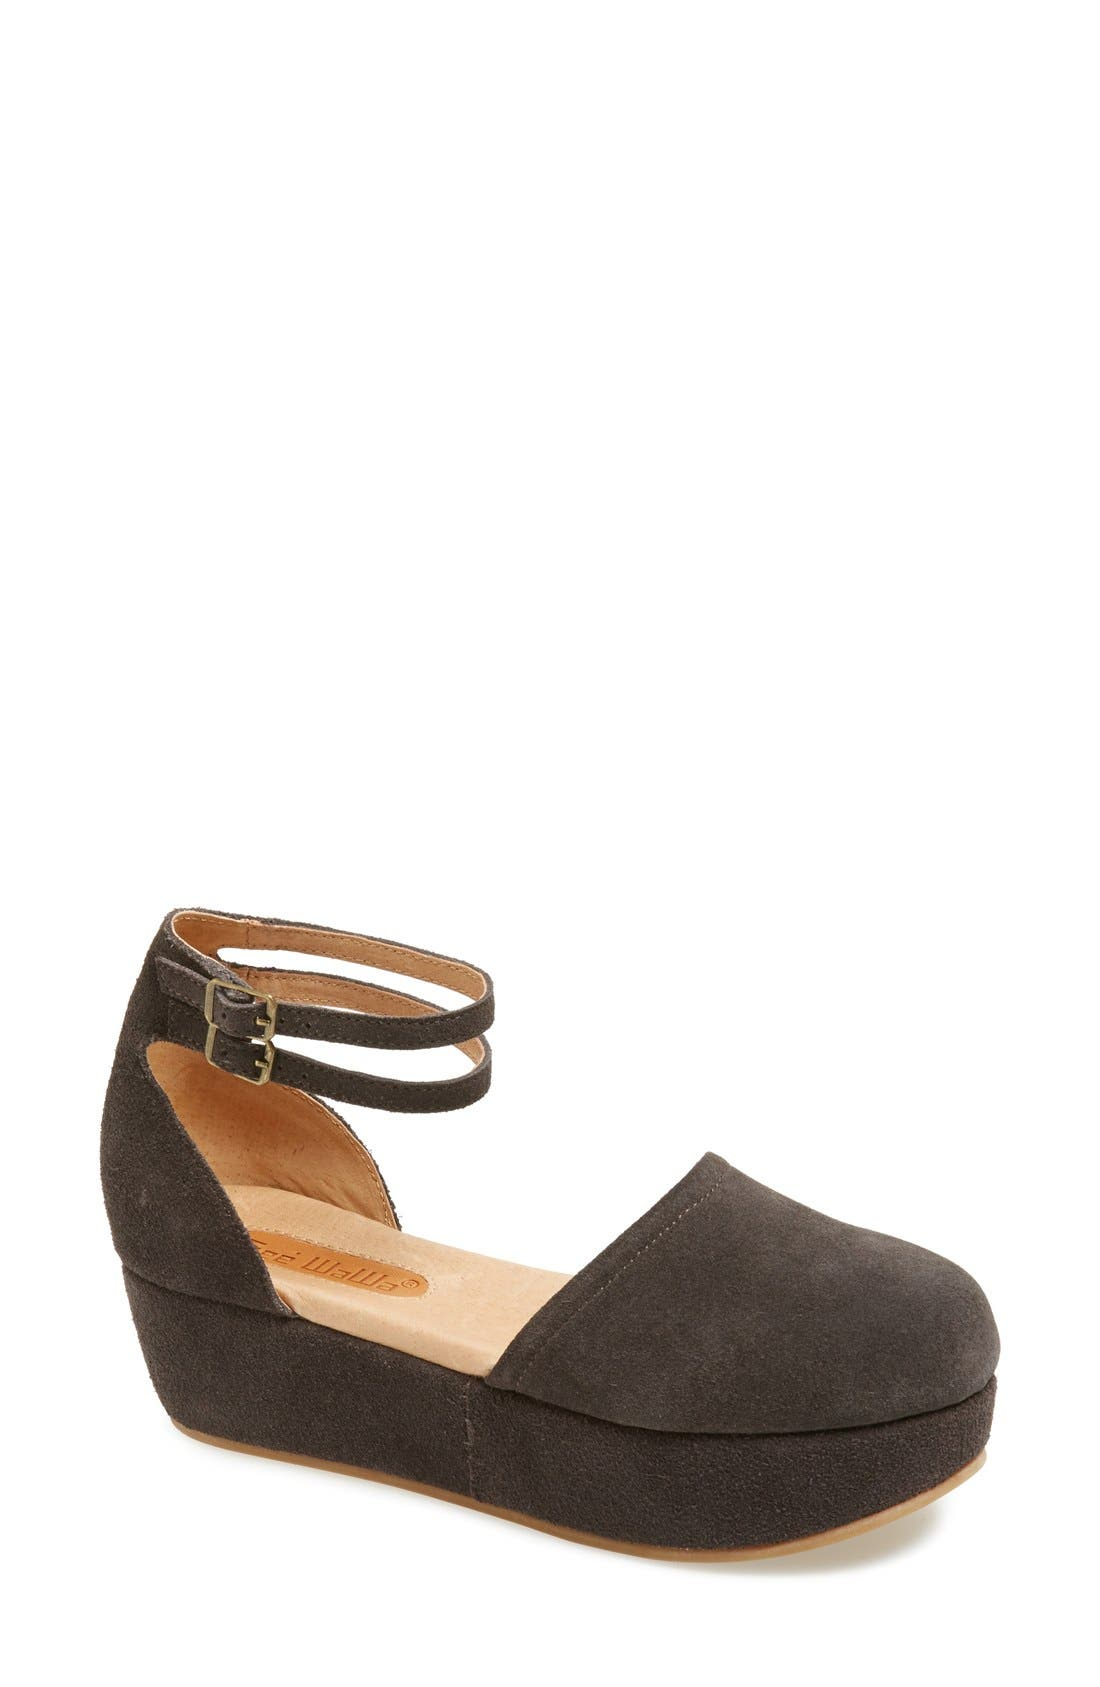 Alternate Image 1 Selected - Gee WaWa 'Peyton' Platform Wedge (Women)